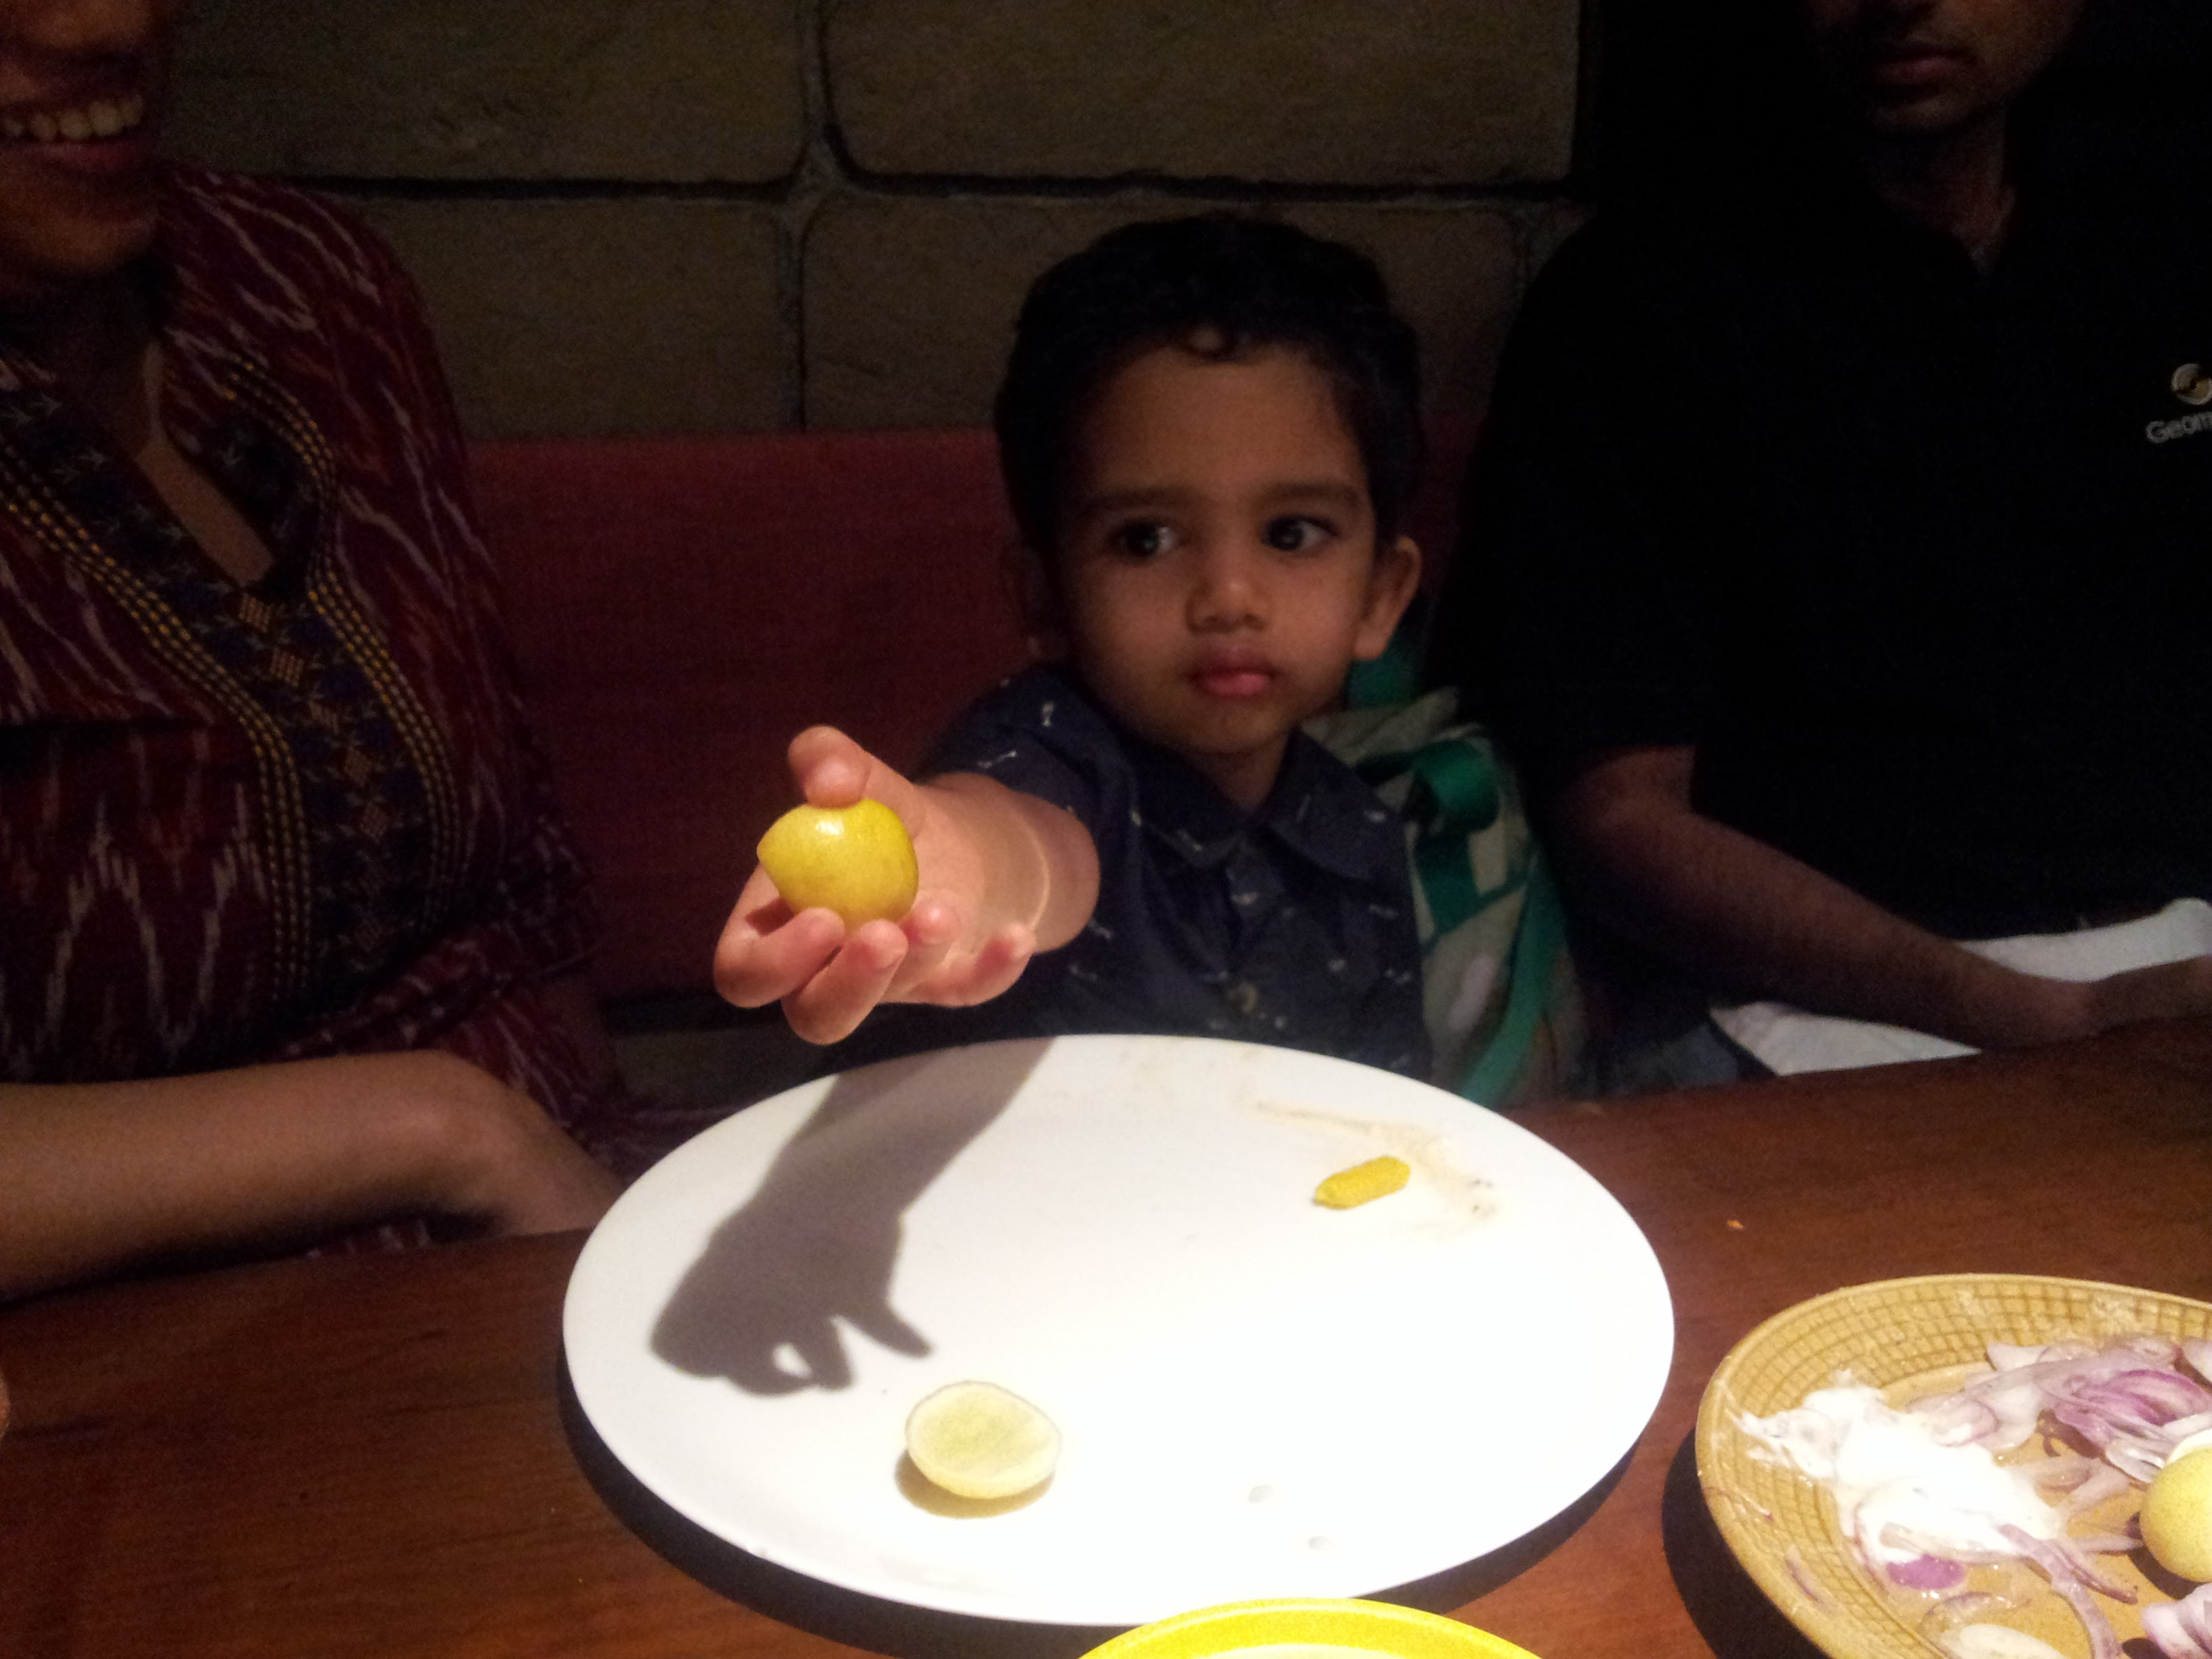 Rehaan giving me a slice of lemon.